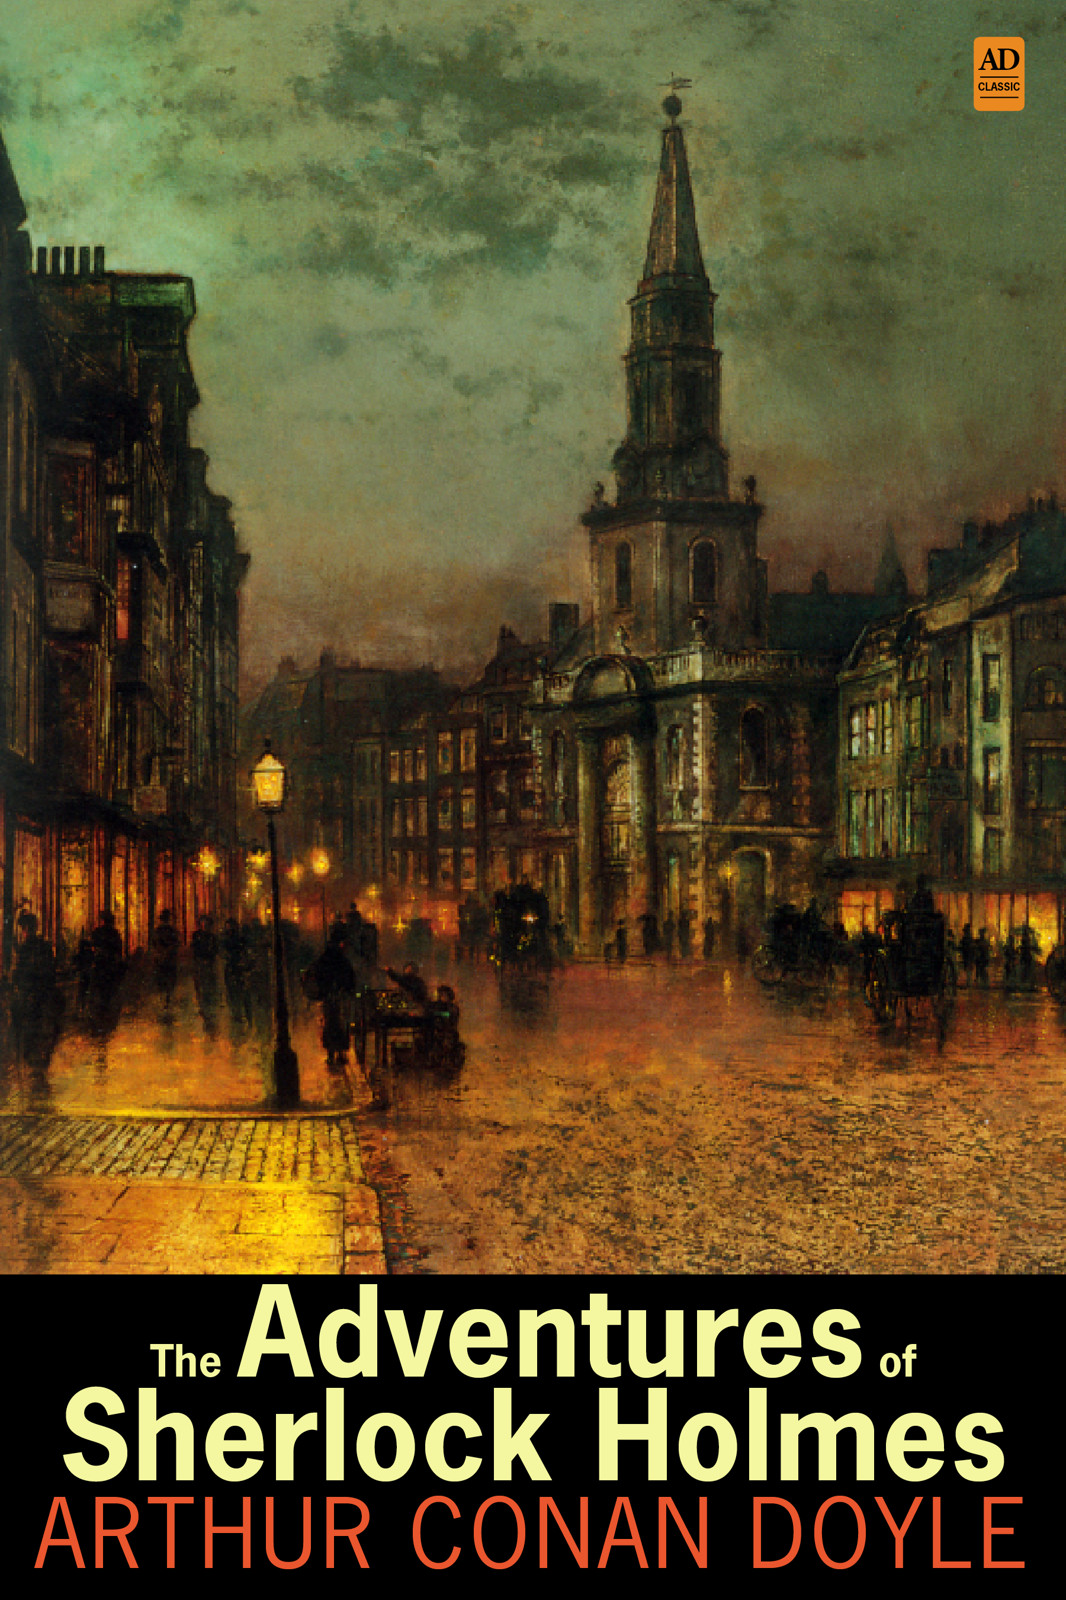 The Adventures of Sherlock Holmes (AD Classic Illustrated)